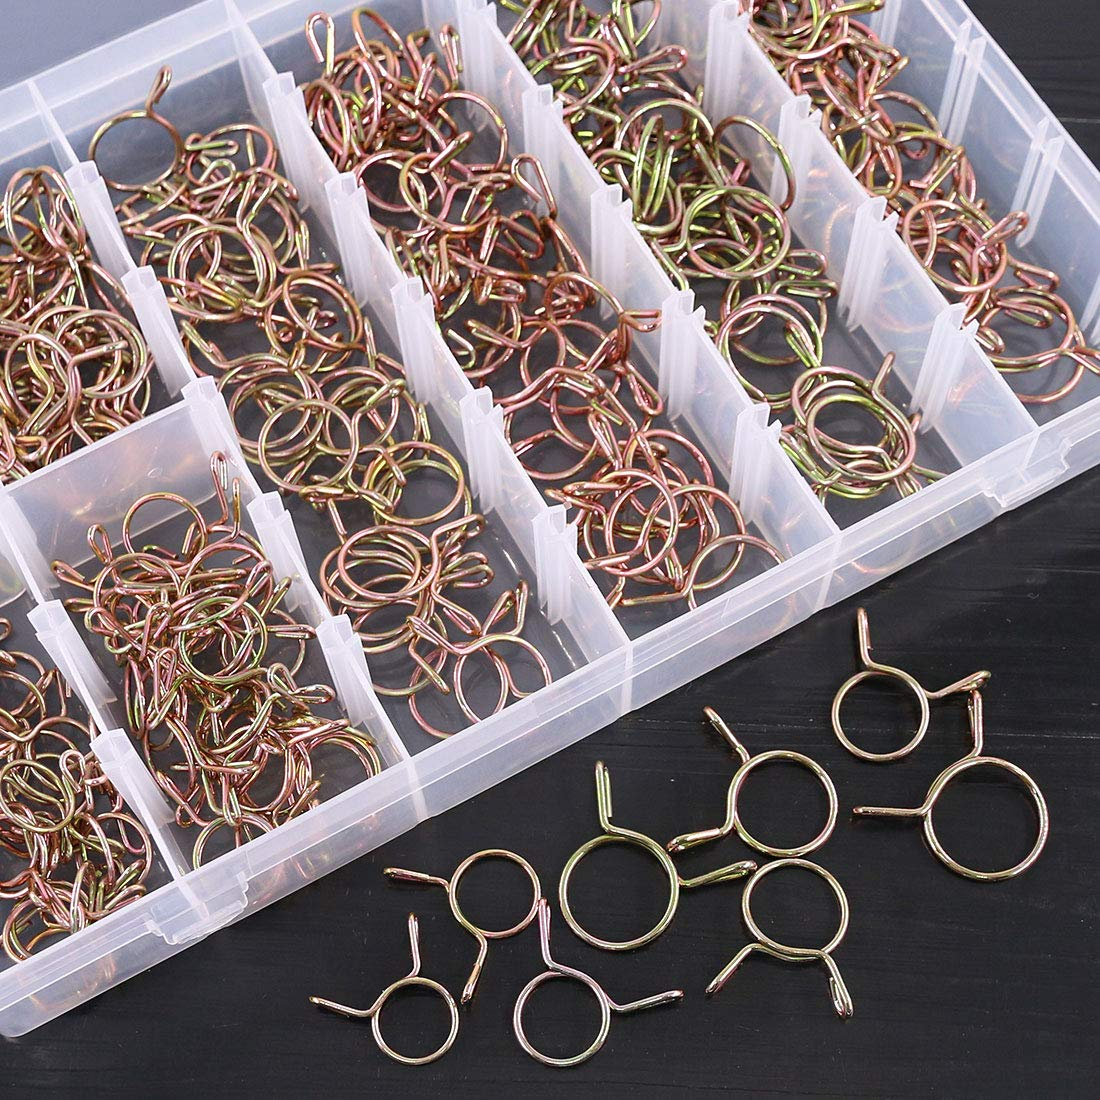 Glarks 240Pcs 8 Size 14-22MM Fuel Line Hose Water Pipe Air Tubing Spring Clips Clamps Assortment Kit for Motorcycle Boat ATVs Scooter